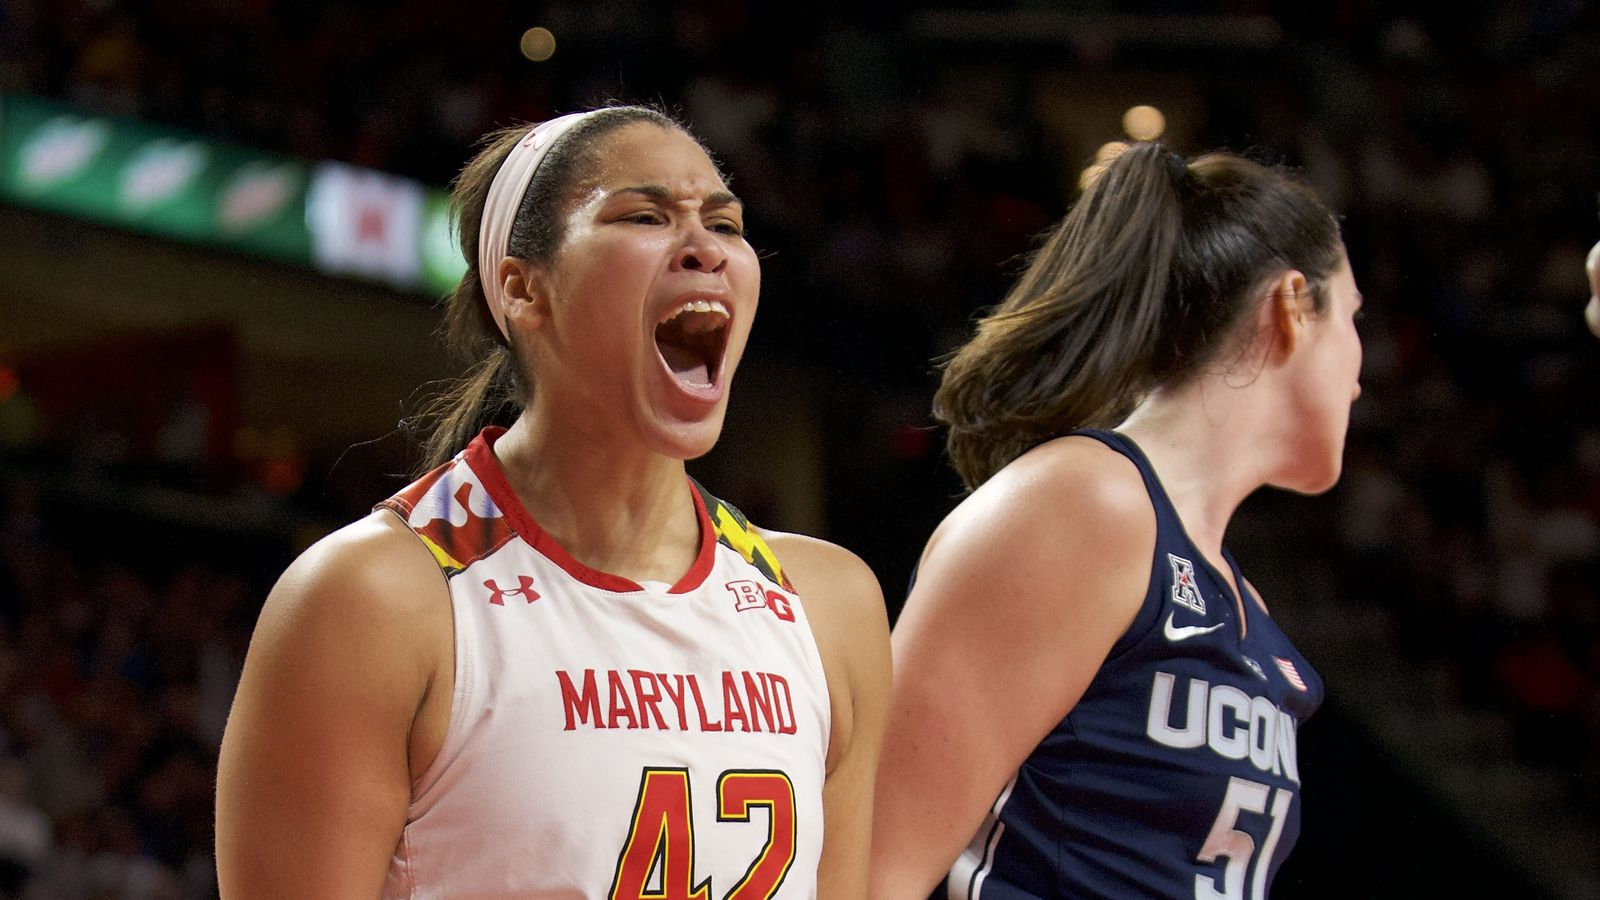 Pin By Md Minhajul Mamun On Soccer Players: Maryland Women's Basketball Vs. Illinois Preview: Terps